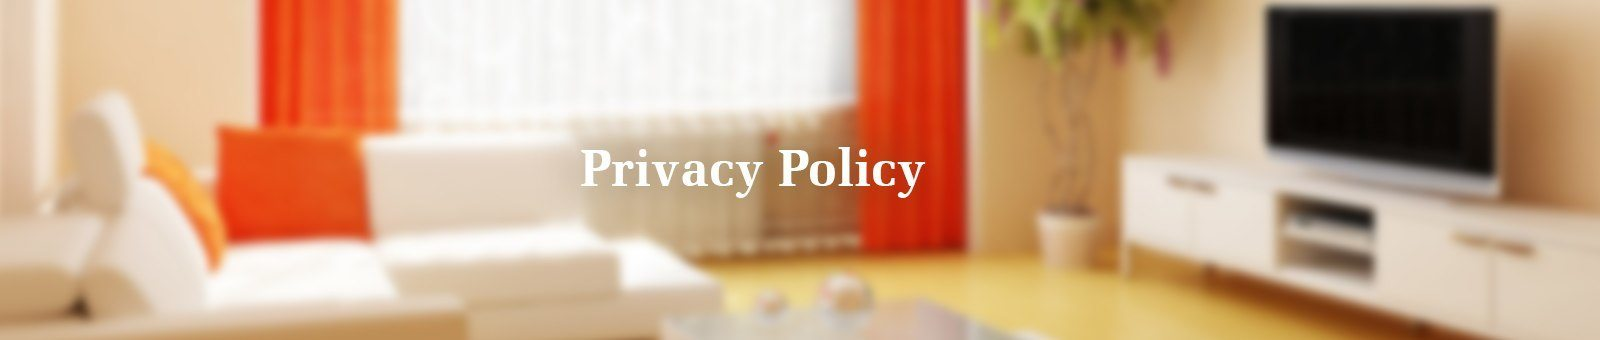 Privacy Policy Slide